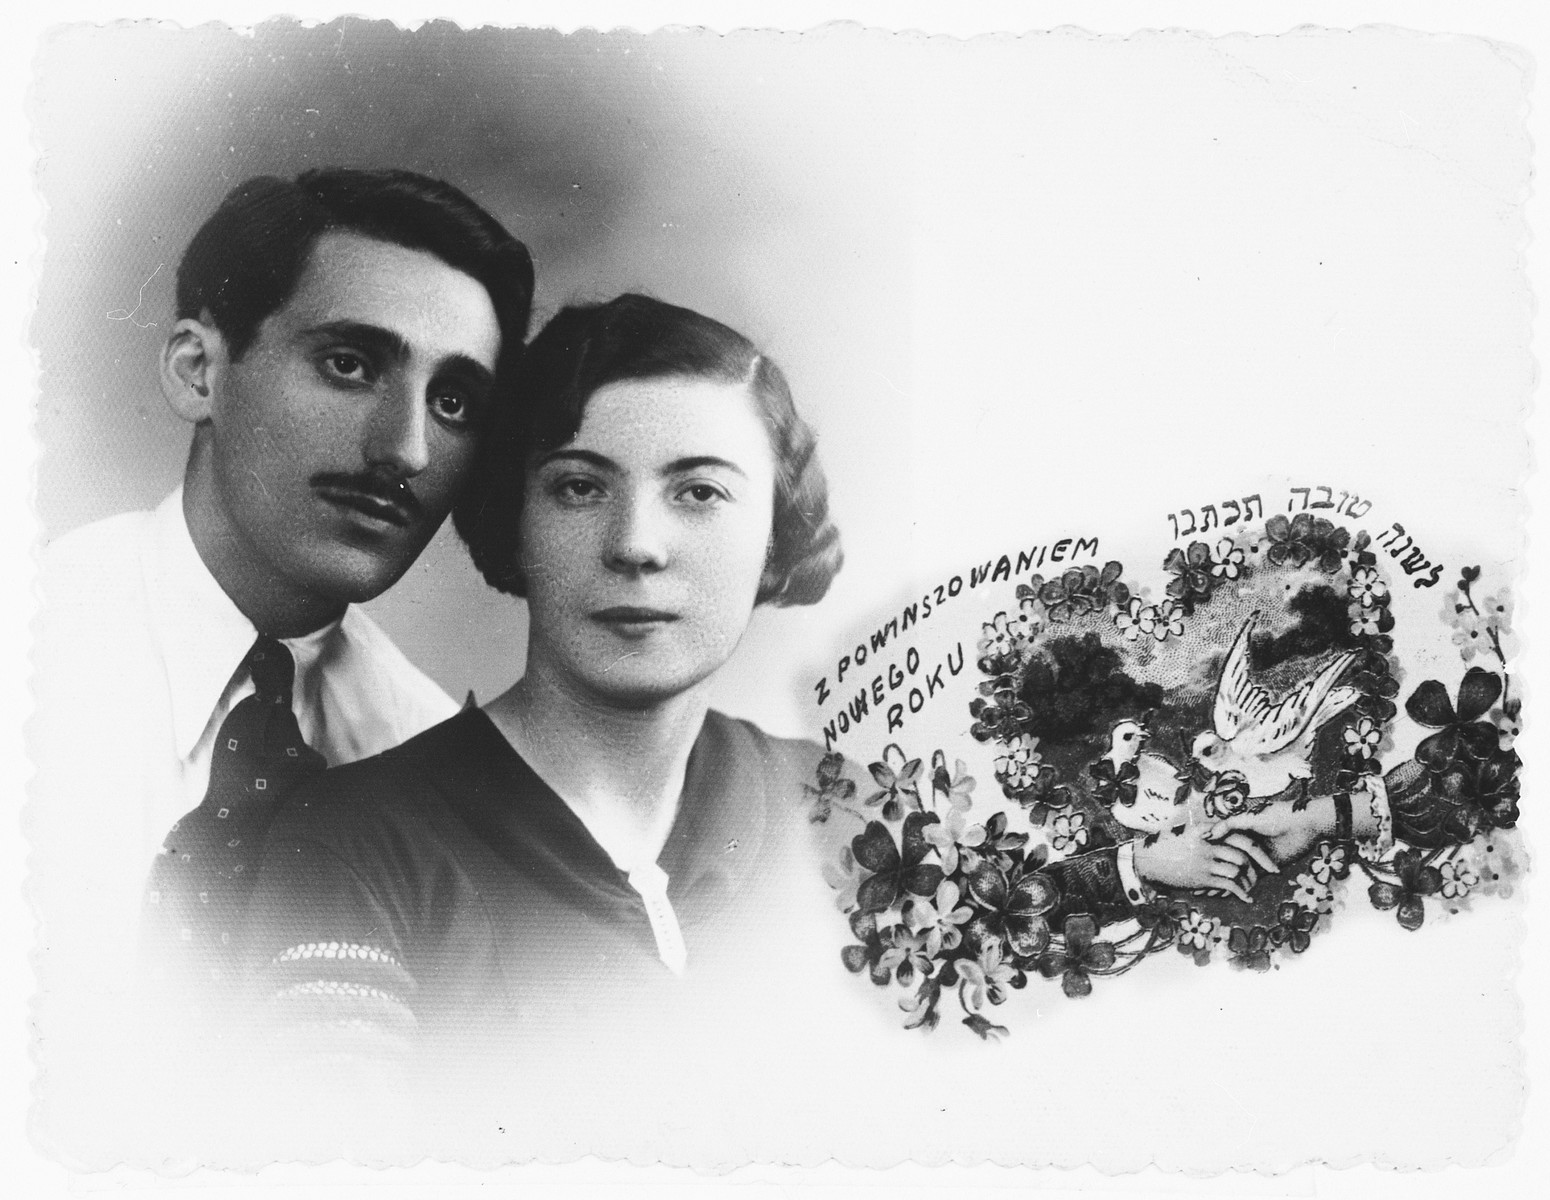 Personalized Jewish New Year's card in Polish and Hebrew with a photograph of a young Jewish couple and an illustration of flowers and birds.  Pictured are Wladyslaw and Felicia Watnicki.